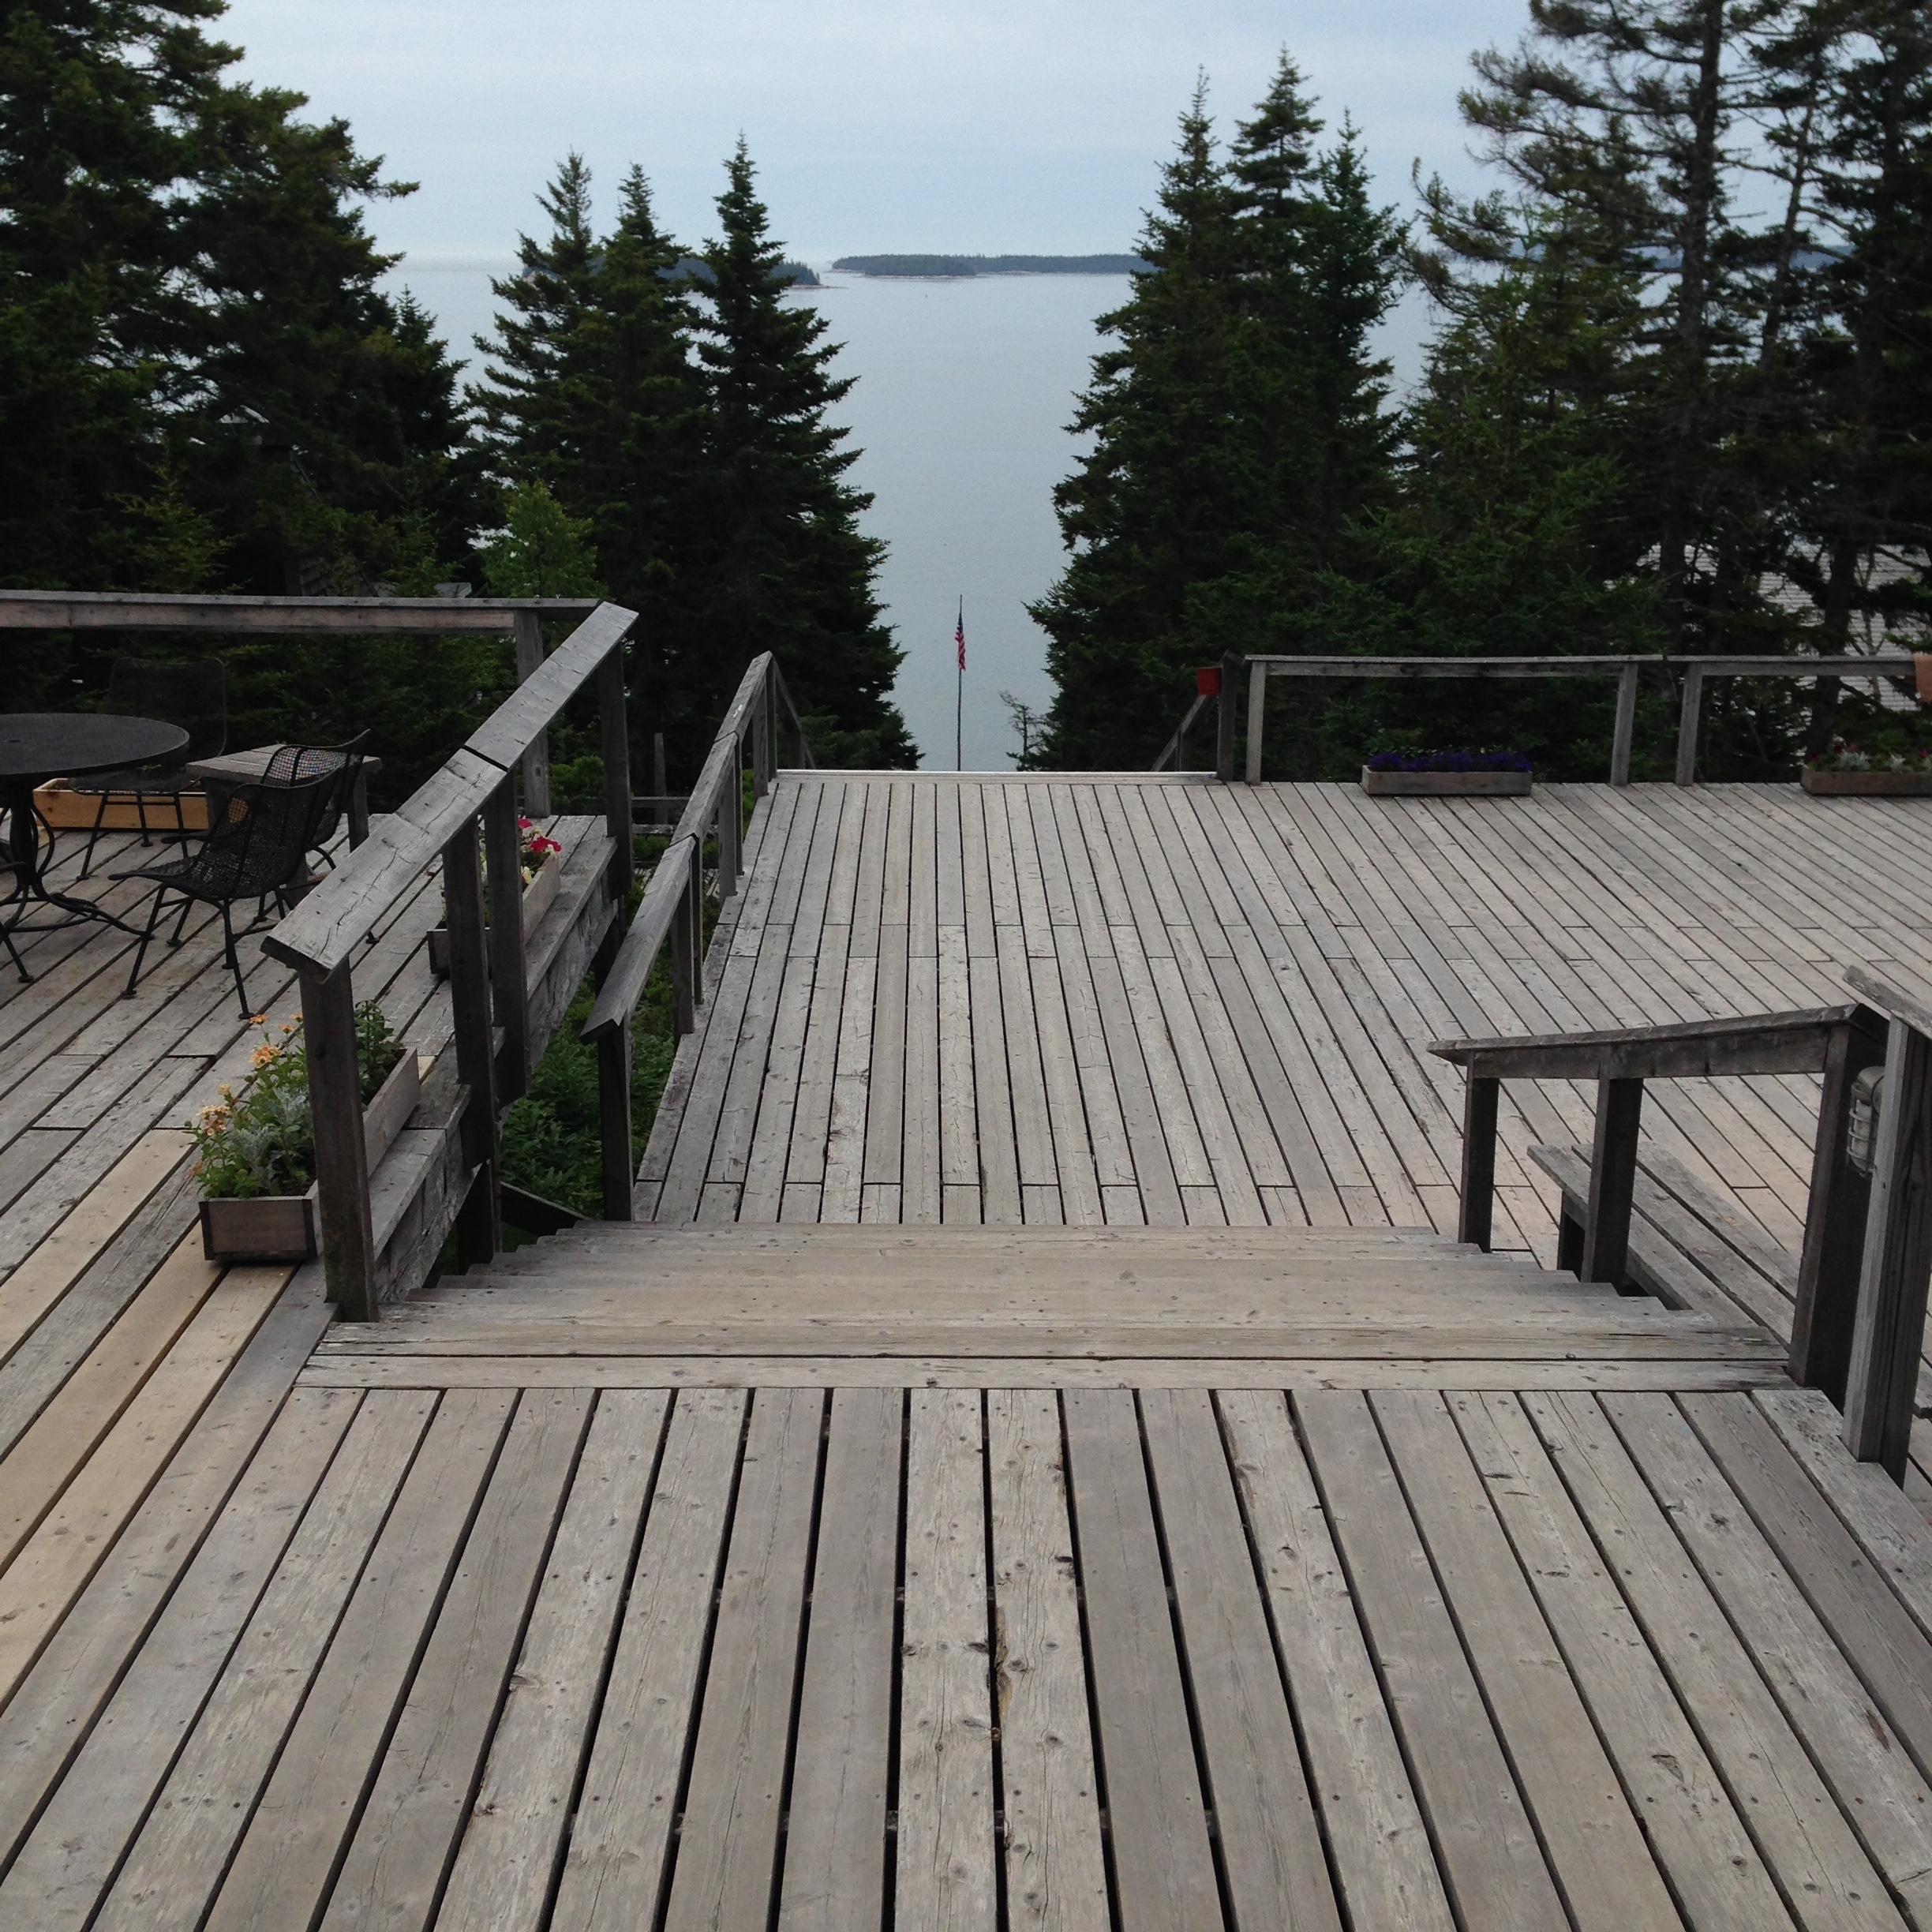 The view from the top deck at Haystack Mountain School of Crafts